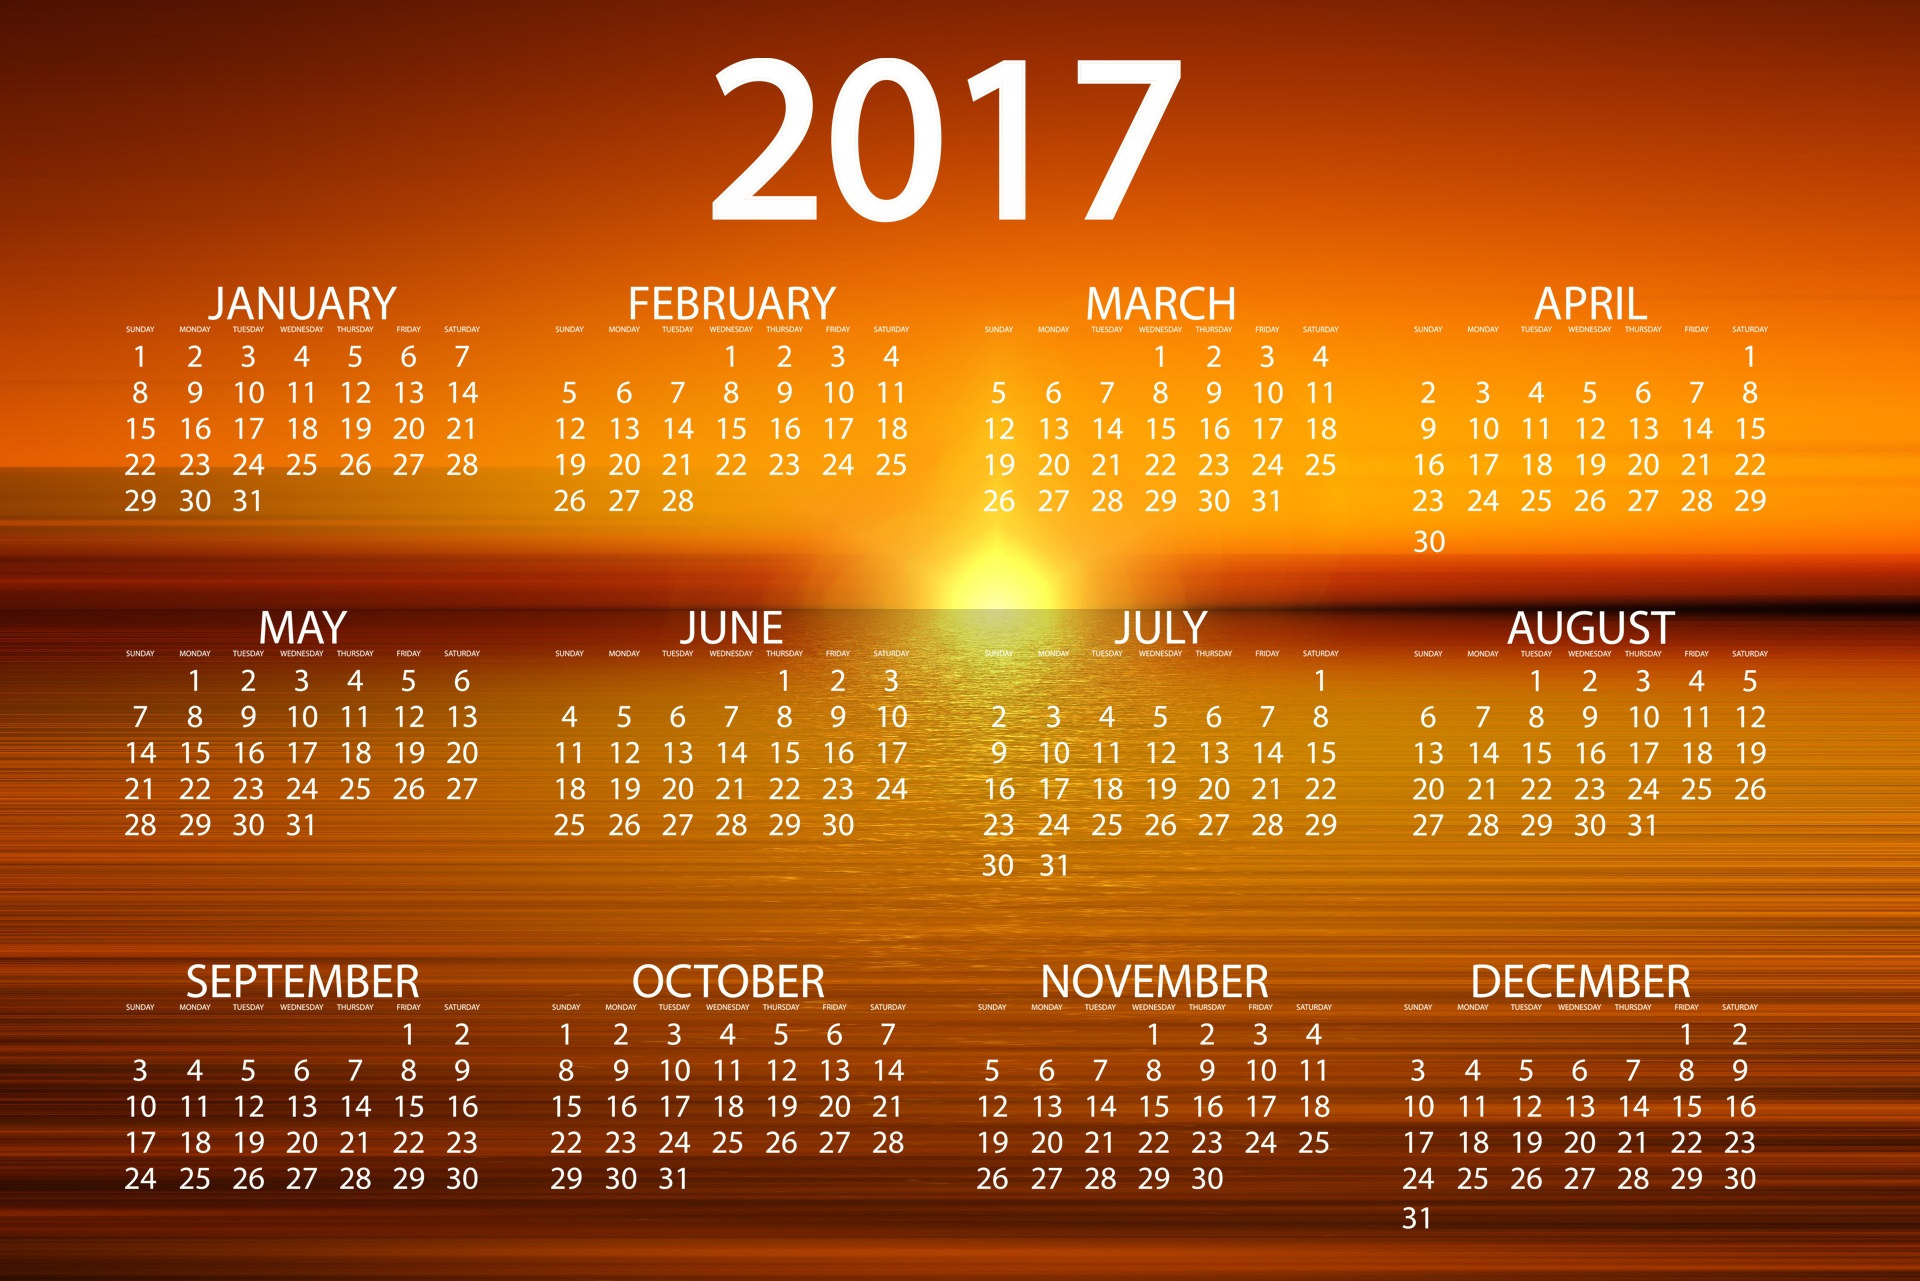 Calendar Wallpaper 2017 : Calendar wallpapers pictures images